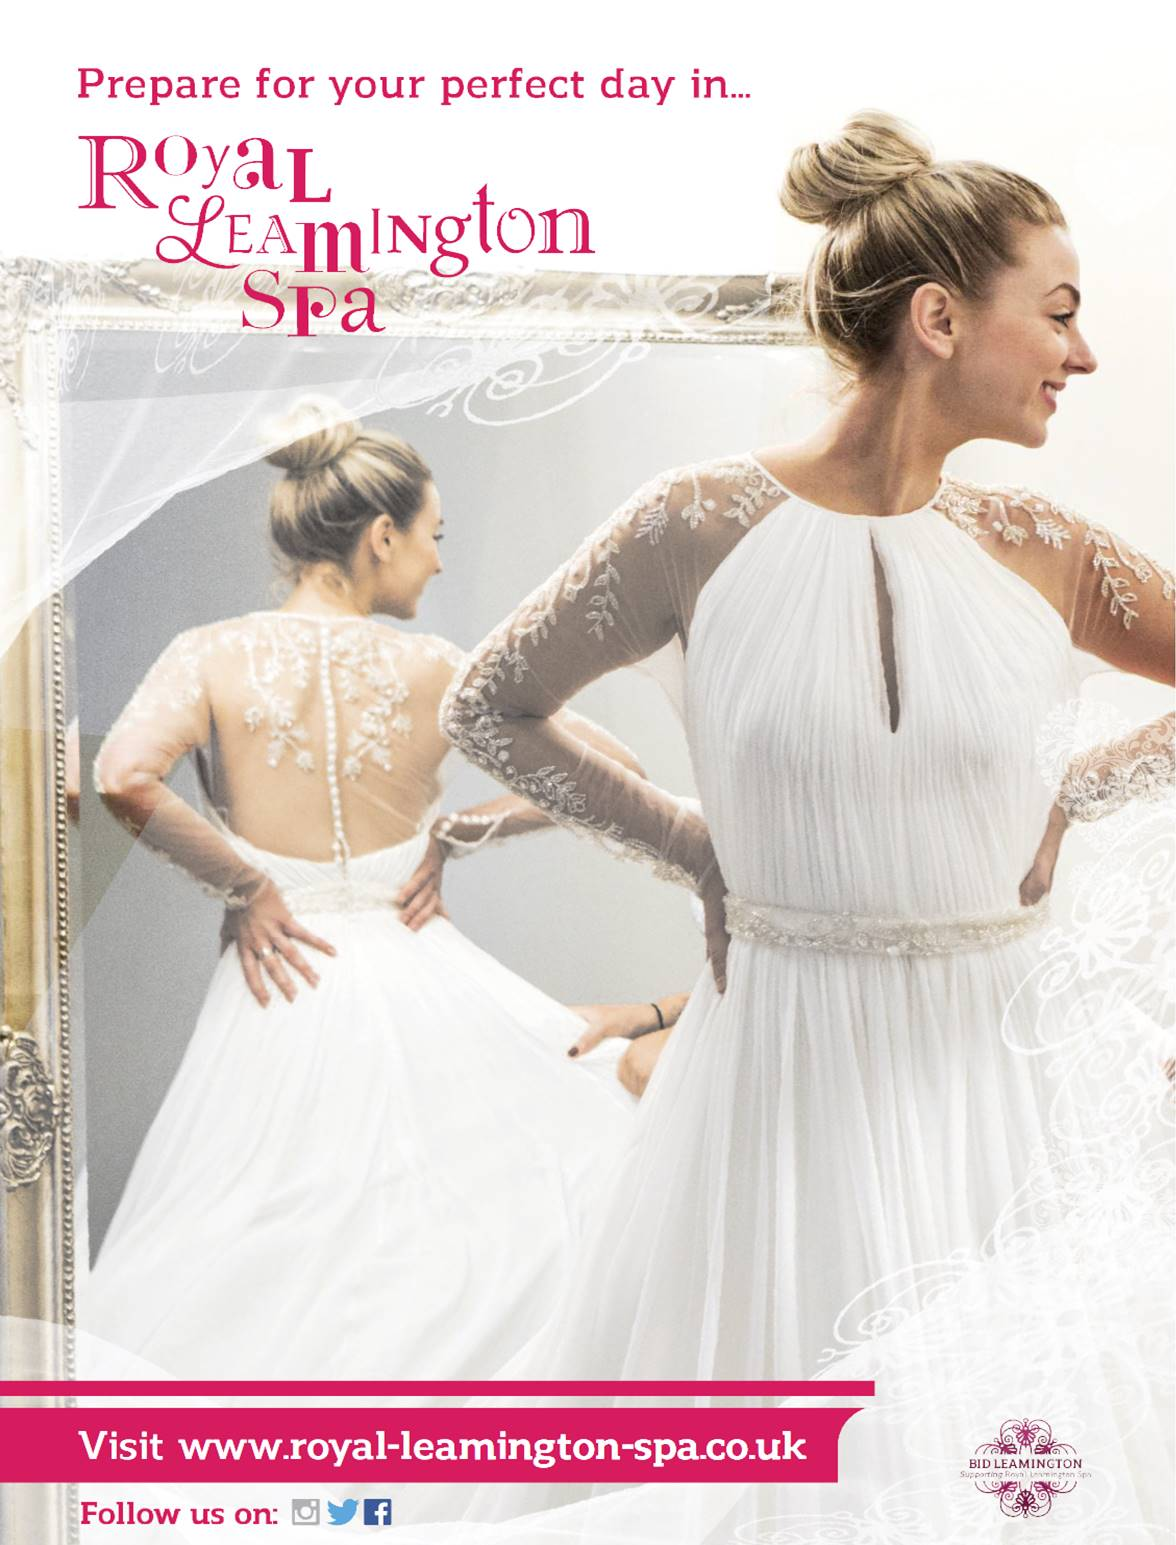 Wedding Full page advert March 2016